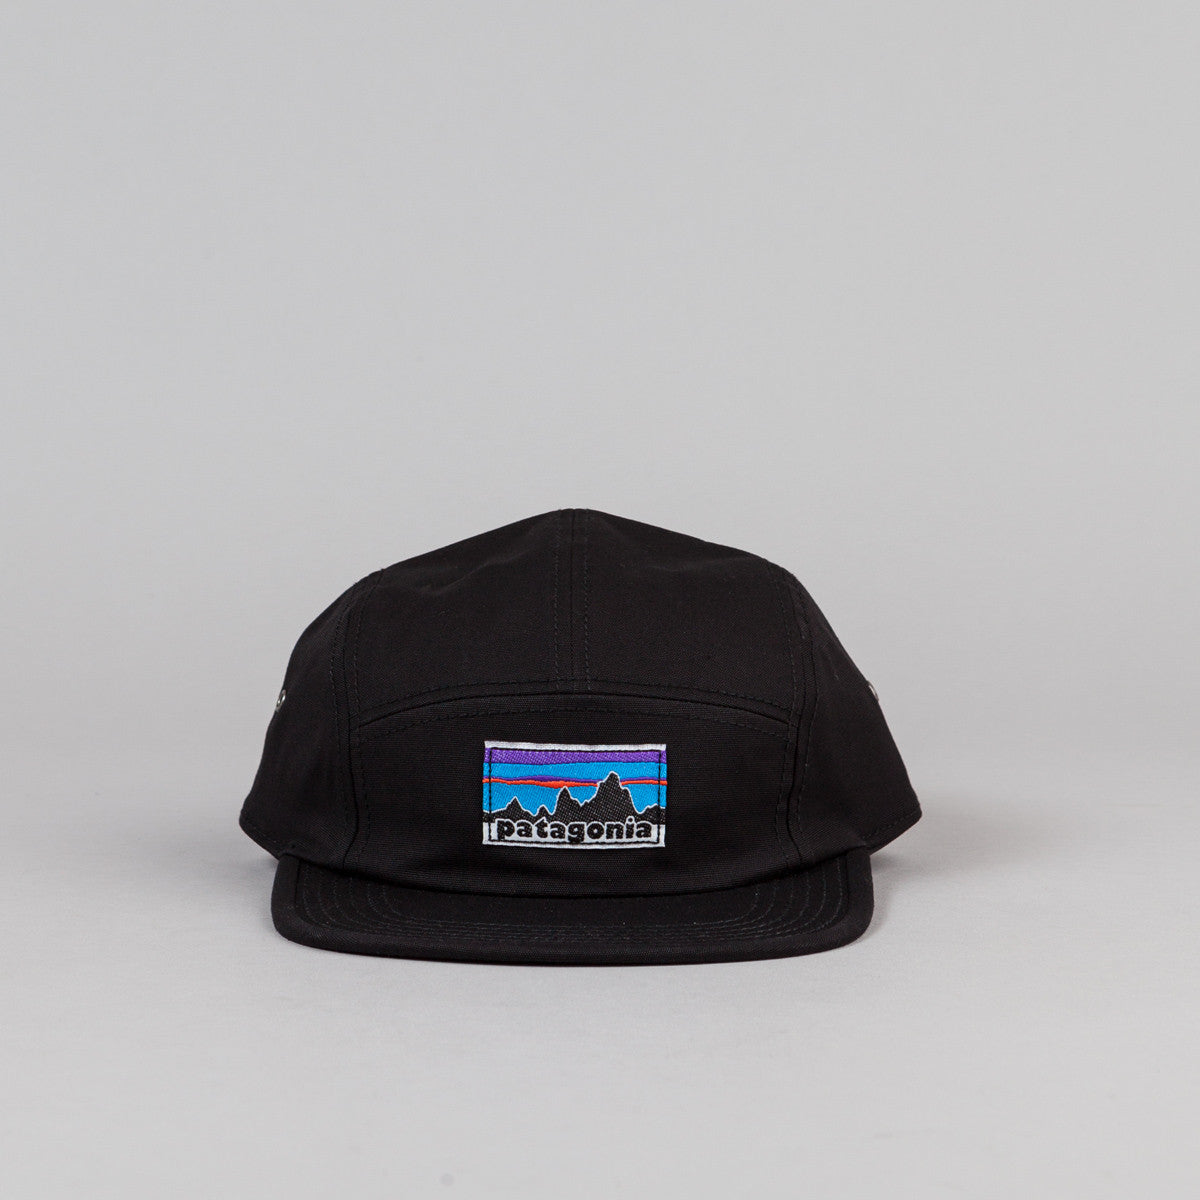 Patagonia Fitz Roy Label Tradesmith Cap - Black